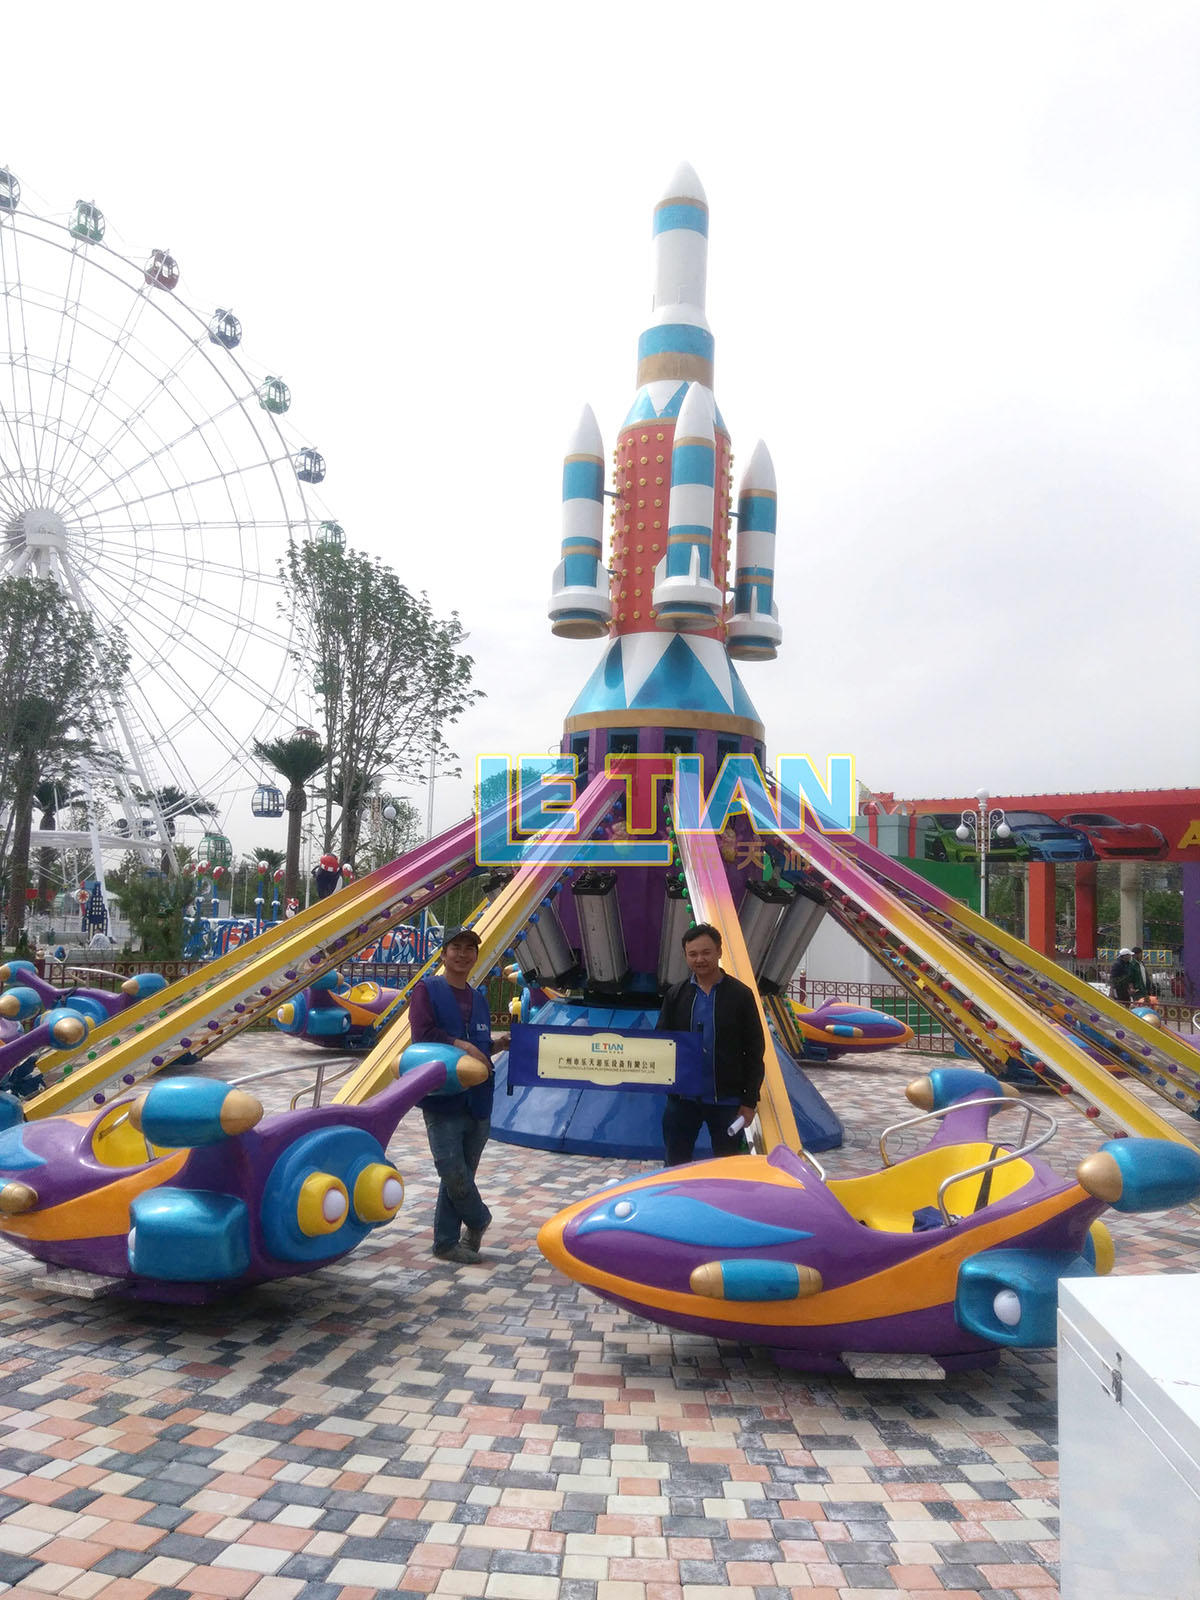 Space shyffle playground equipment for the amusement park